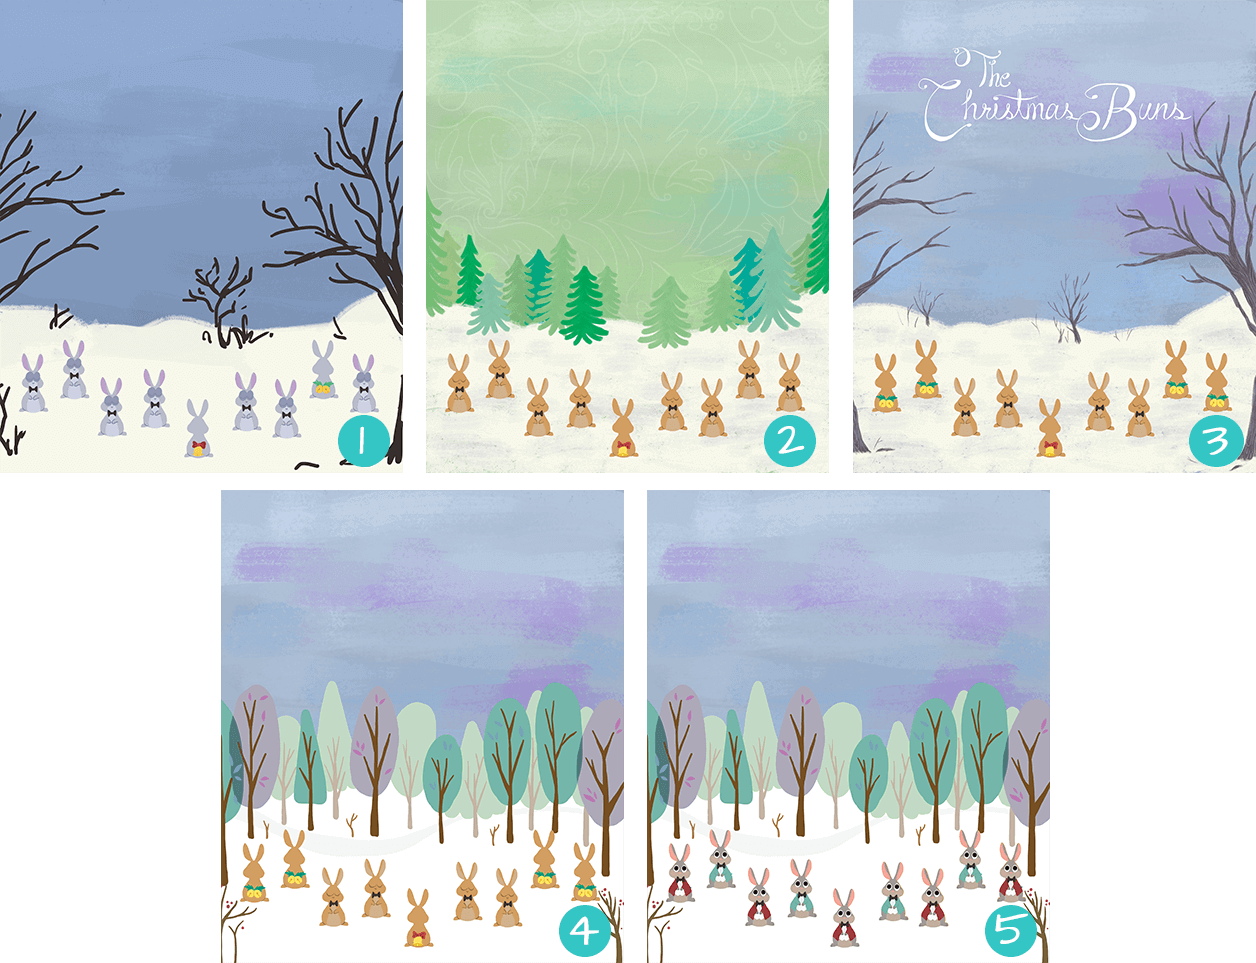 Background Studies from The Christmas Buns Animation for Hallmark by Jeca Martinez 1